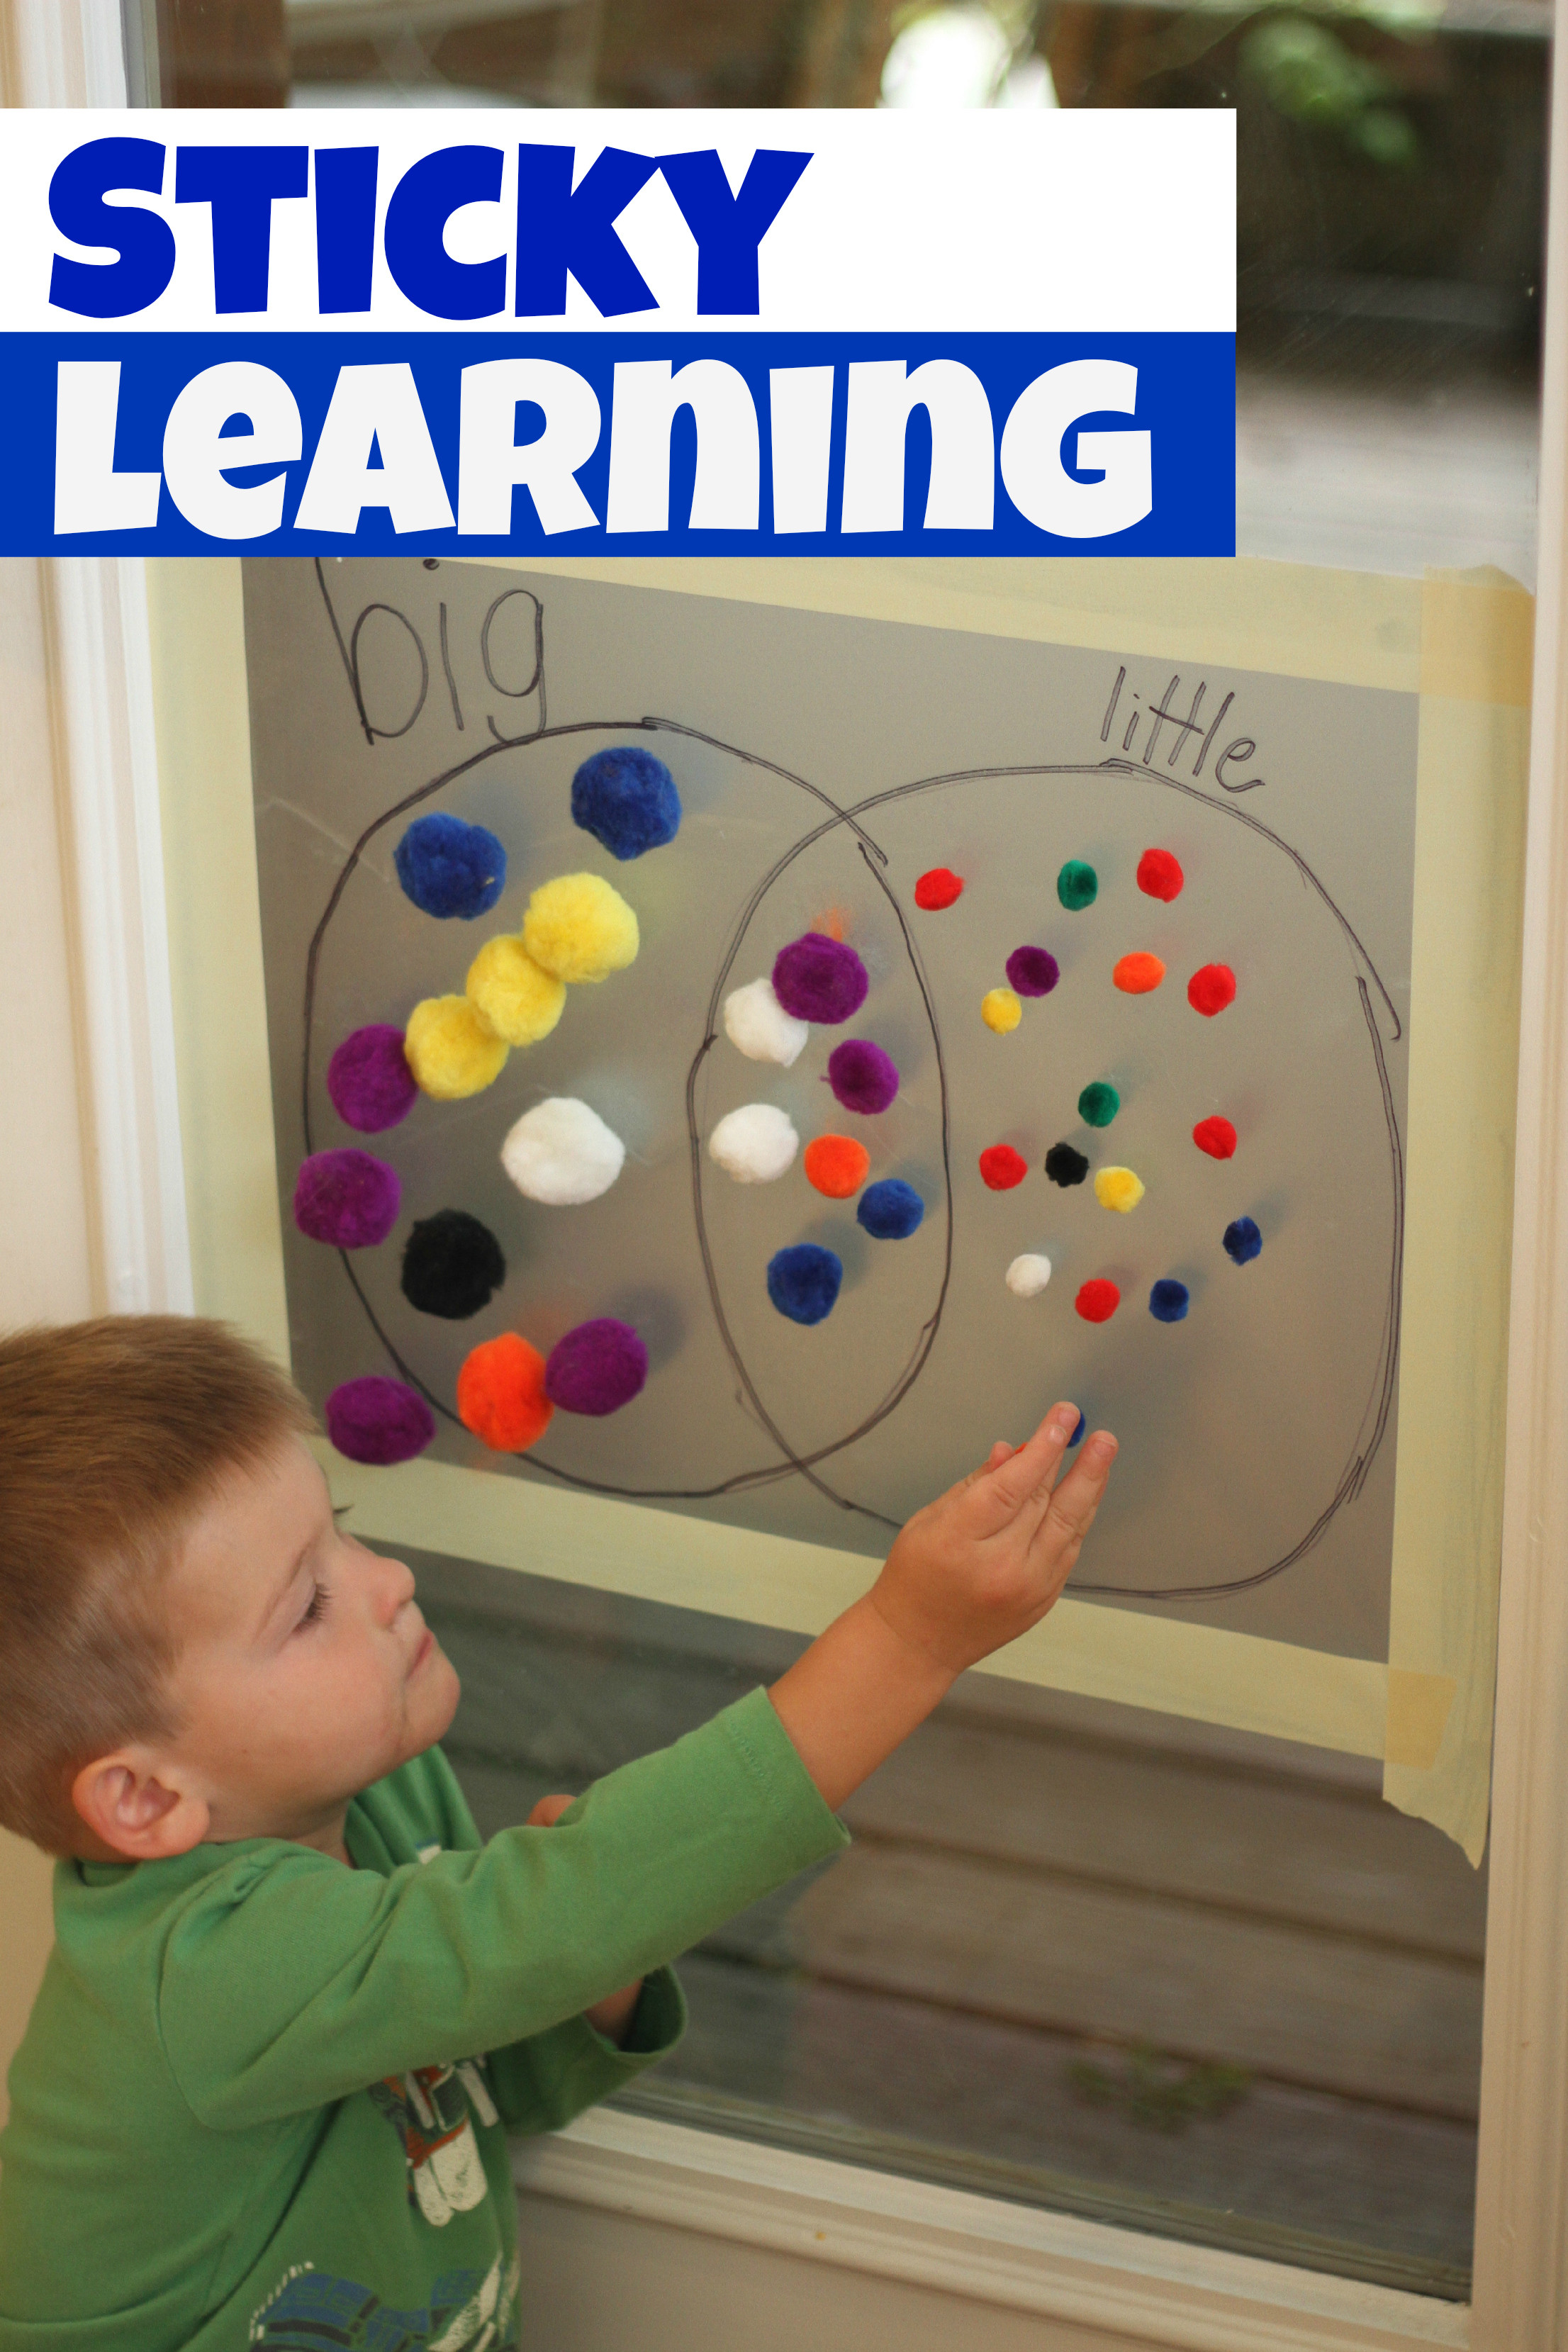 Best ideas about Learning Crafts For Toddlers . Save or Pin Sticky Learning Now.